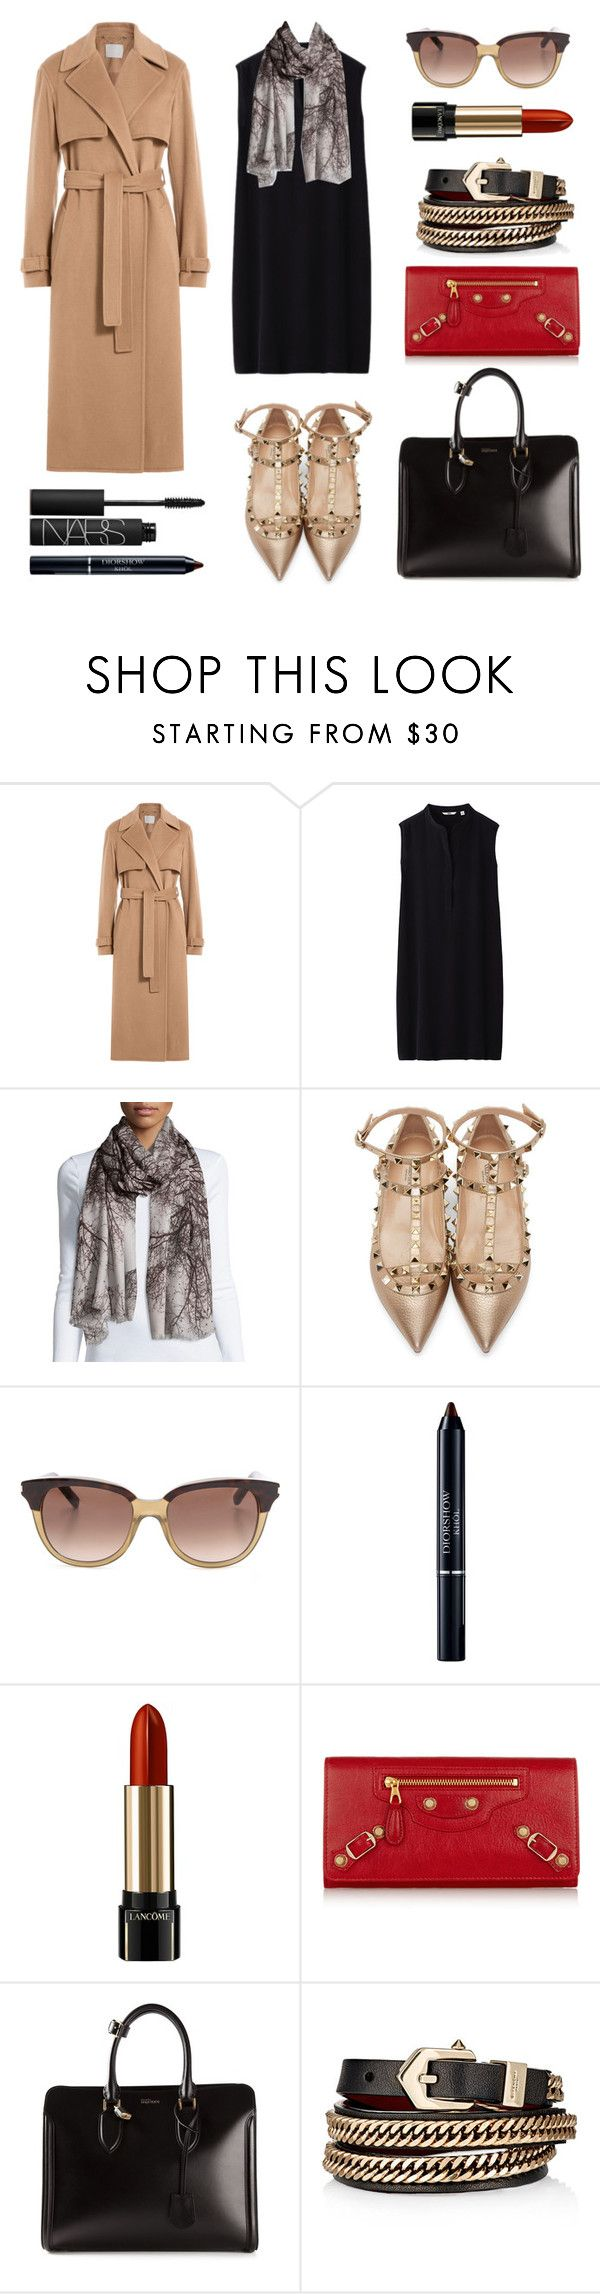 #Street Style: Gold Ankle Wrap Flats by sandycyh on Polyvore featuring Uniqlo, Jason Wu, Valentino, Alexander McQueen, Balenciaga, Givenchy, St. Piece, Yves Saint Laurent, NARS Cosmetics and Lancome #fashion #fashionset #style #streetstyle #polyvore #polyvorecontest #camelcoat #camel #coat #jasonwu #black #blackdress #dress #uniqlo #leatherbag #totebag #AlexanderMcQueen #wallet #Balenciaga #anklewrapflats #valentino #sunglasses #saintlaurent #scarf #cashmerescarf #stpiece #st_piece #jewelry…